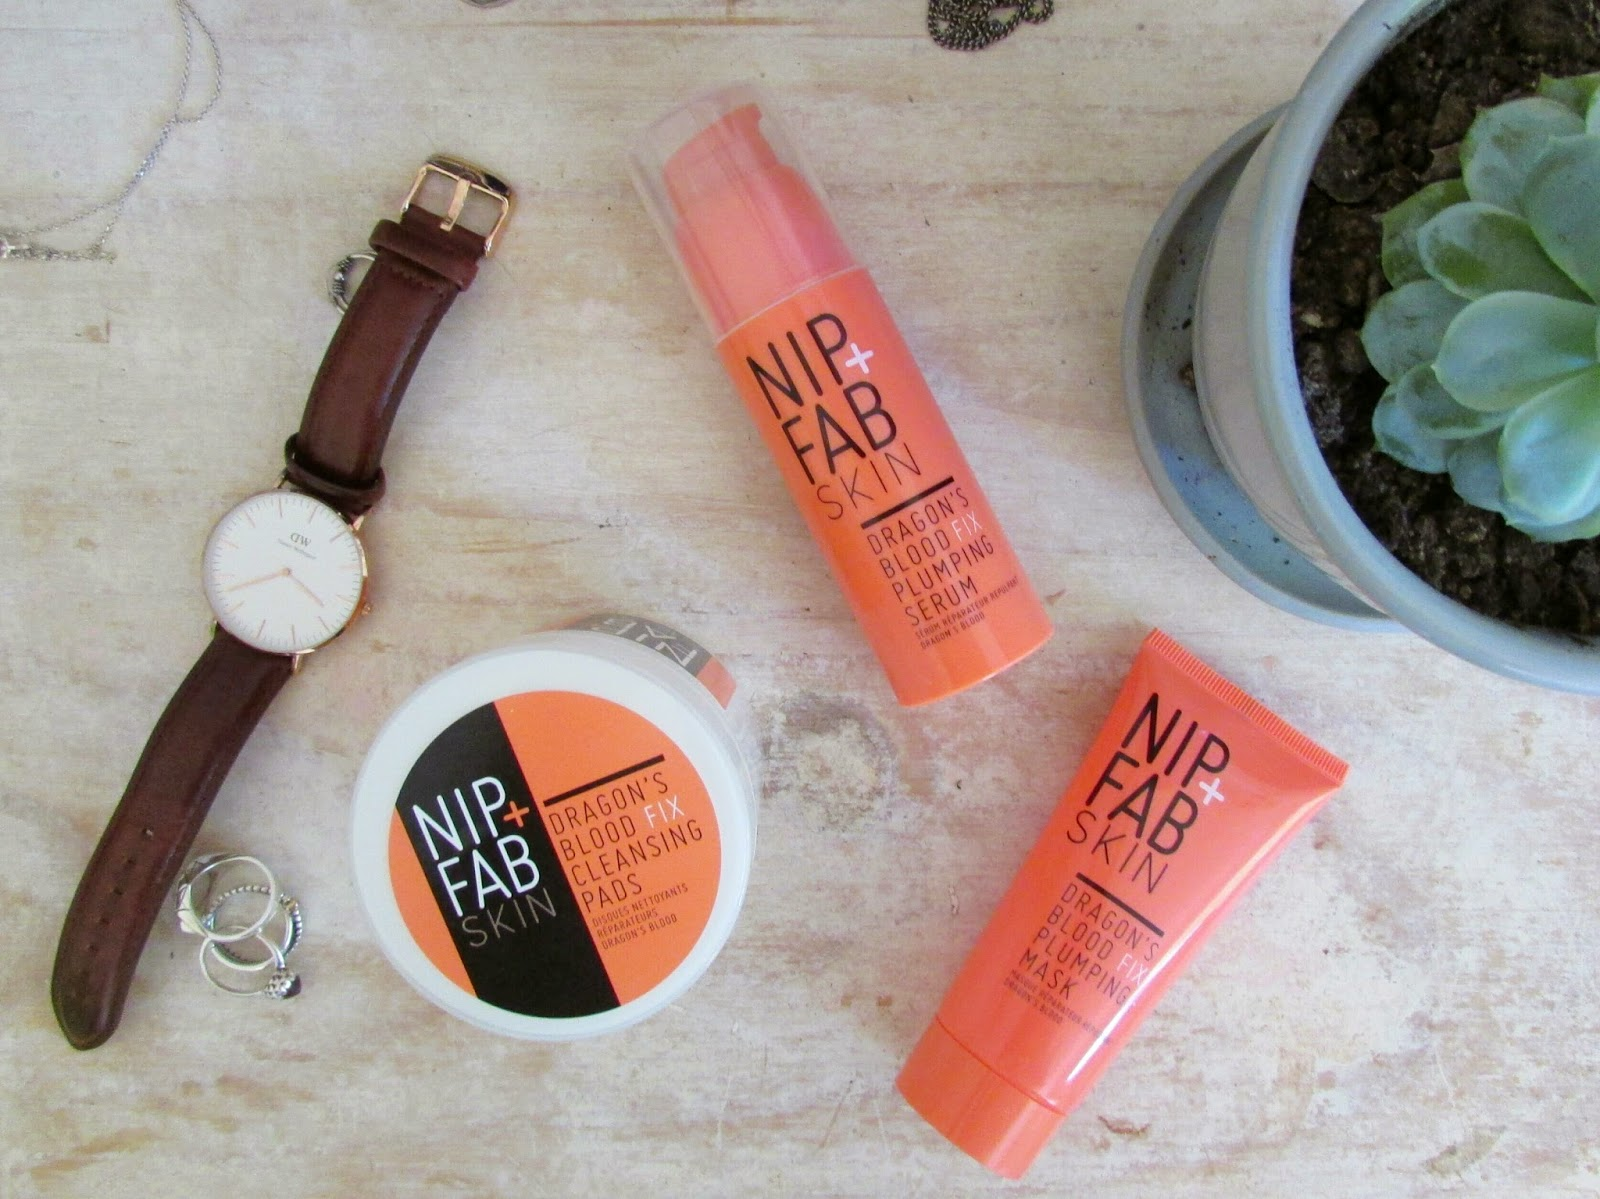 nip+fab, nib fab dragons blood fix